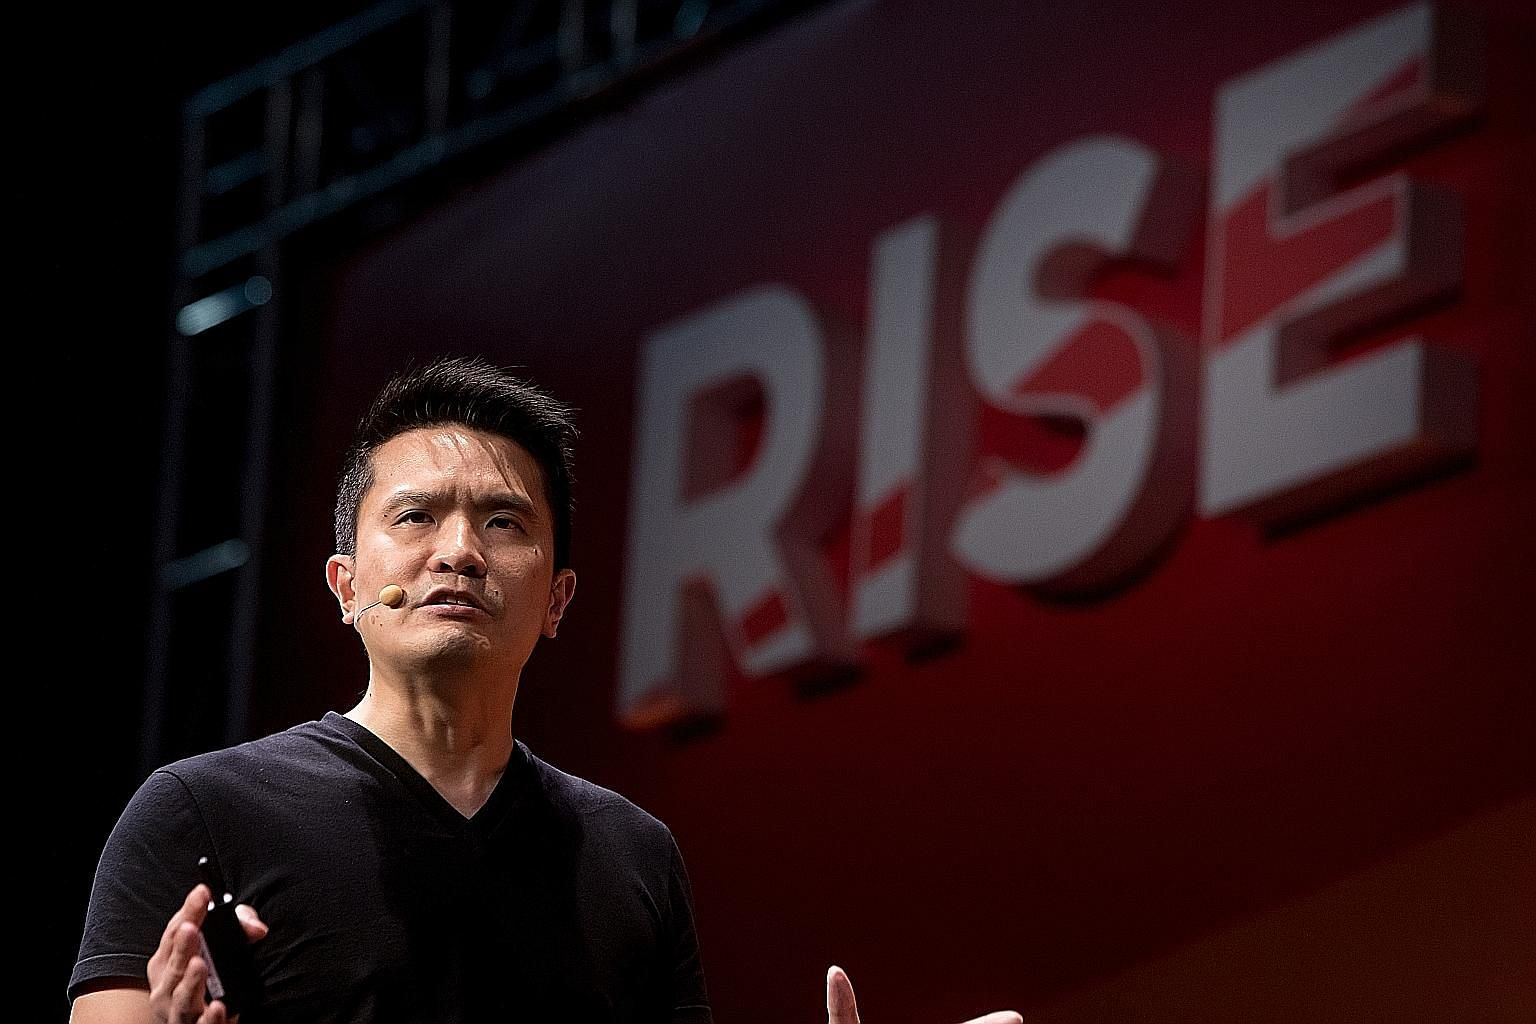 Mr Tan Min-Liang, chief executive and chairman of Razer, speaking at the Rise tech conference in Hong Kong yesterday.